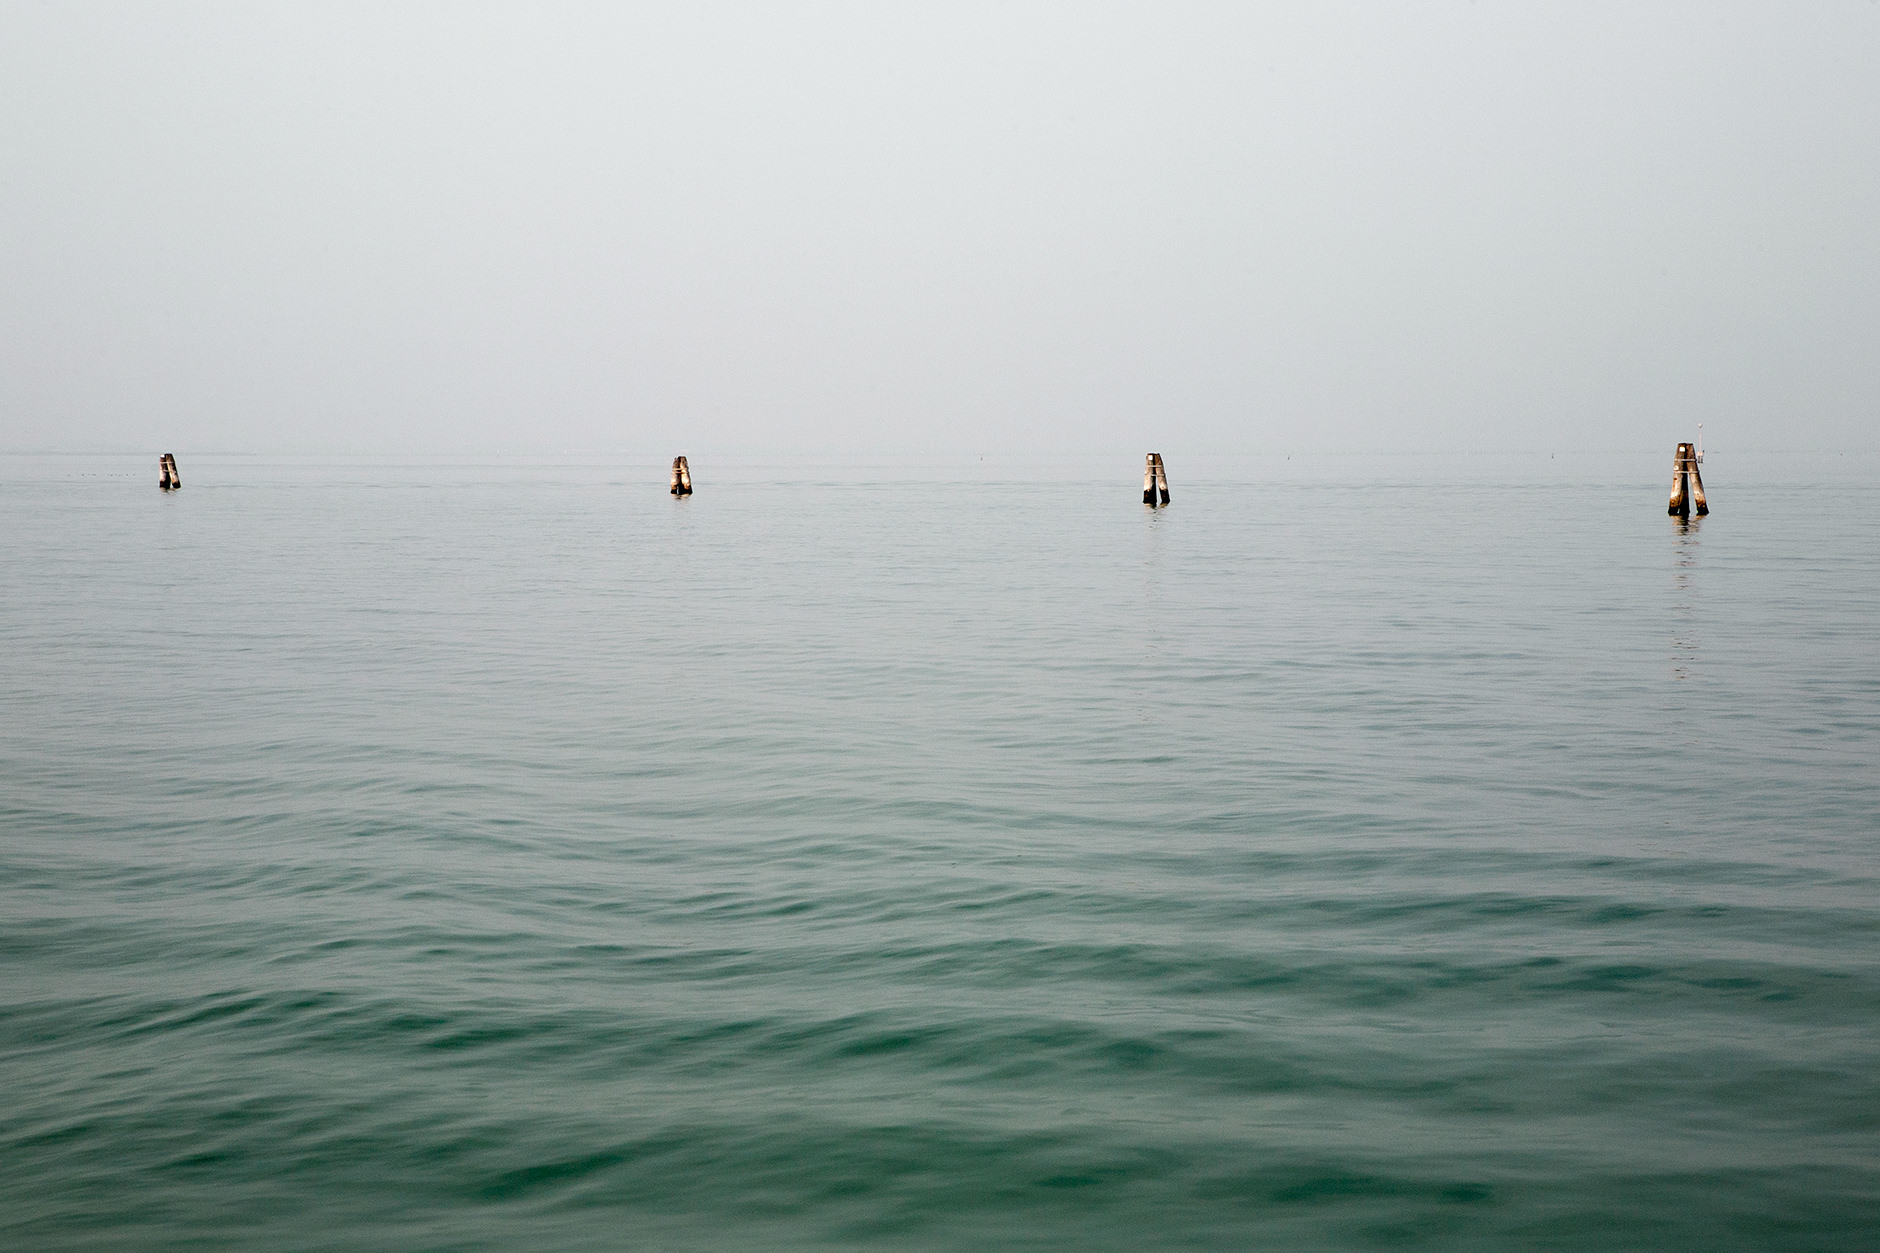 Michelle Grant | Stillness | Sea study #1